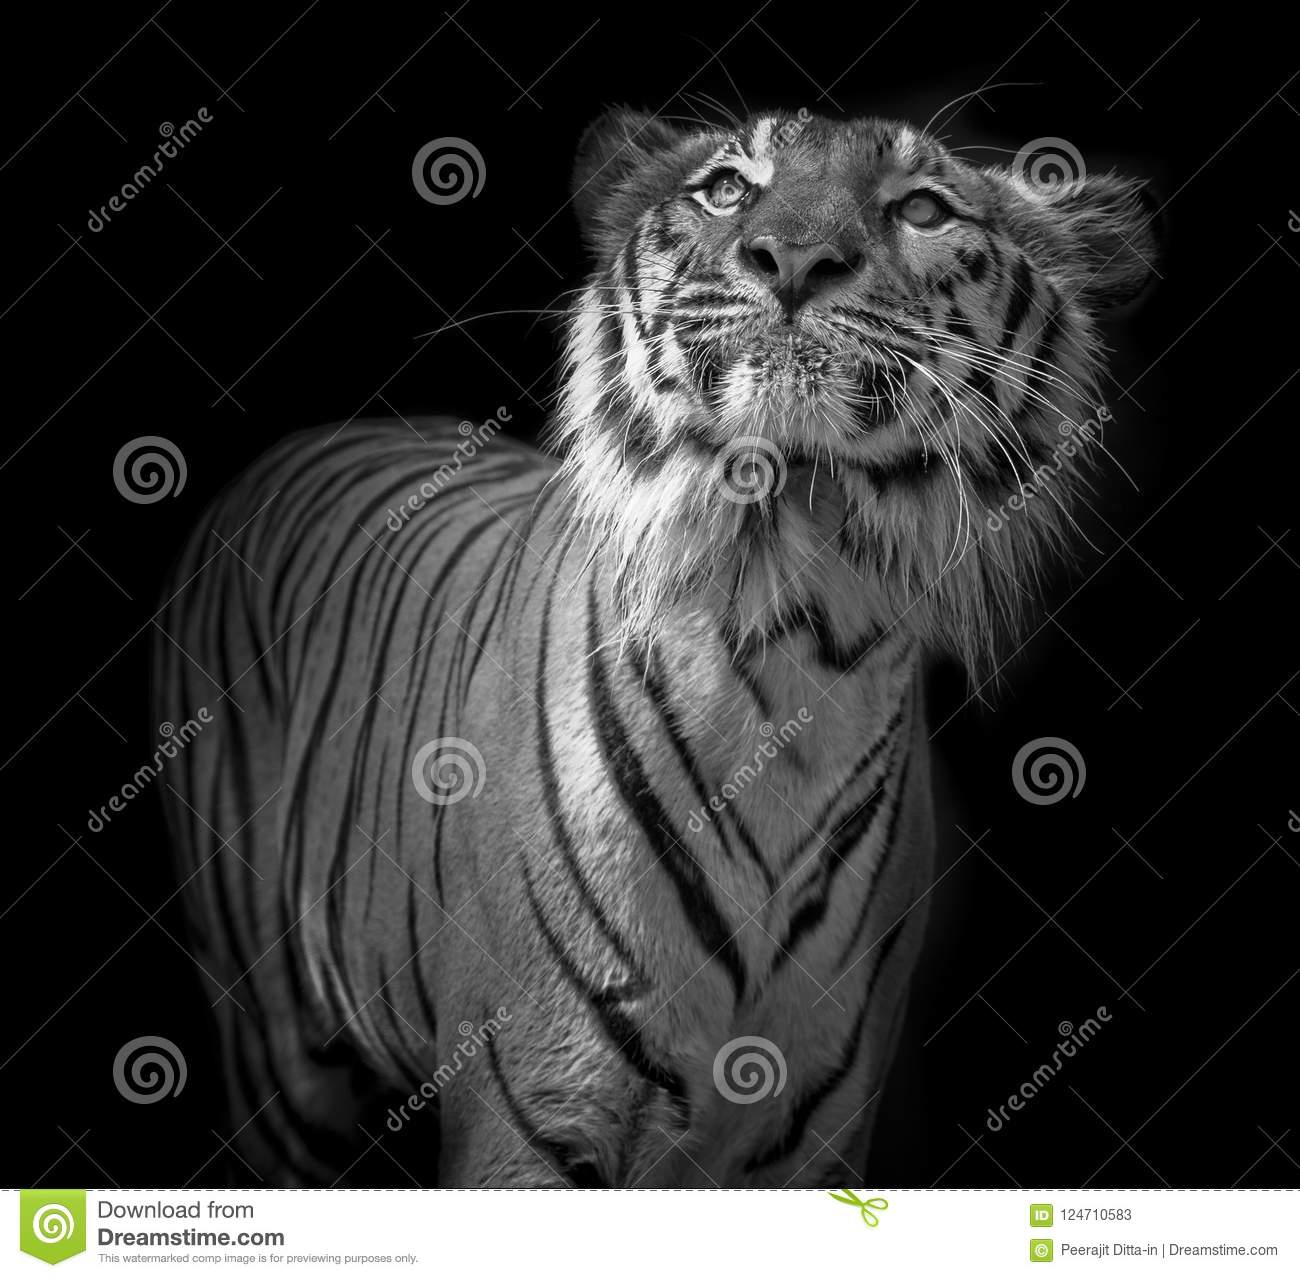 7f2d40306 Black And White Tiger Portrait In Front Of Black Background Stock ...